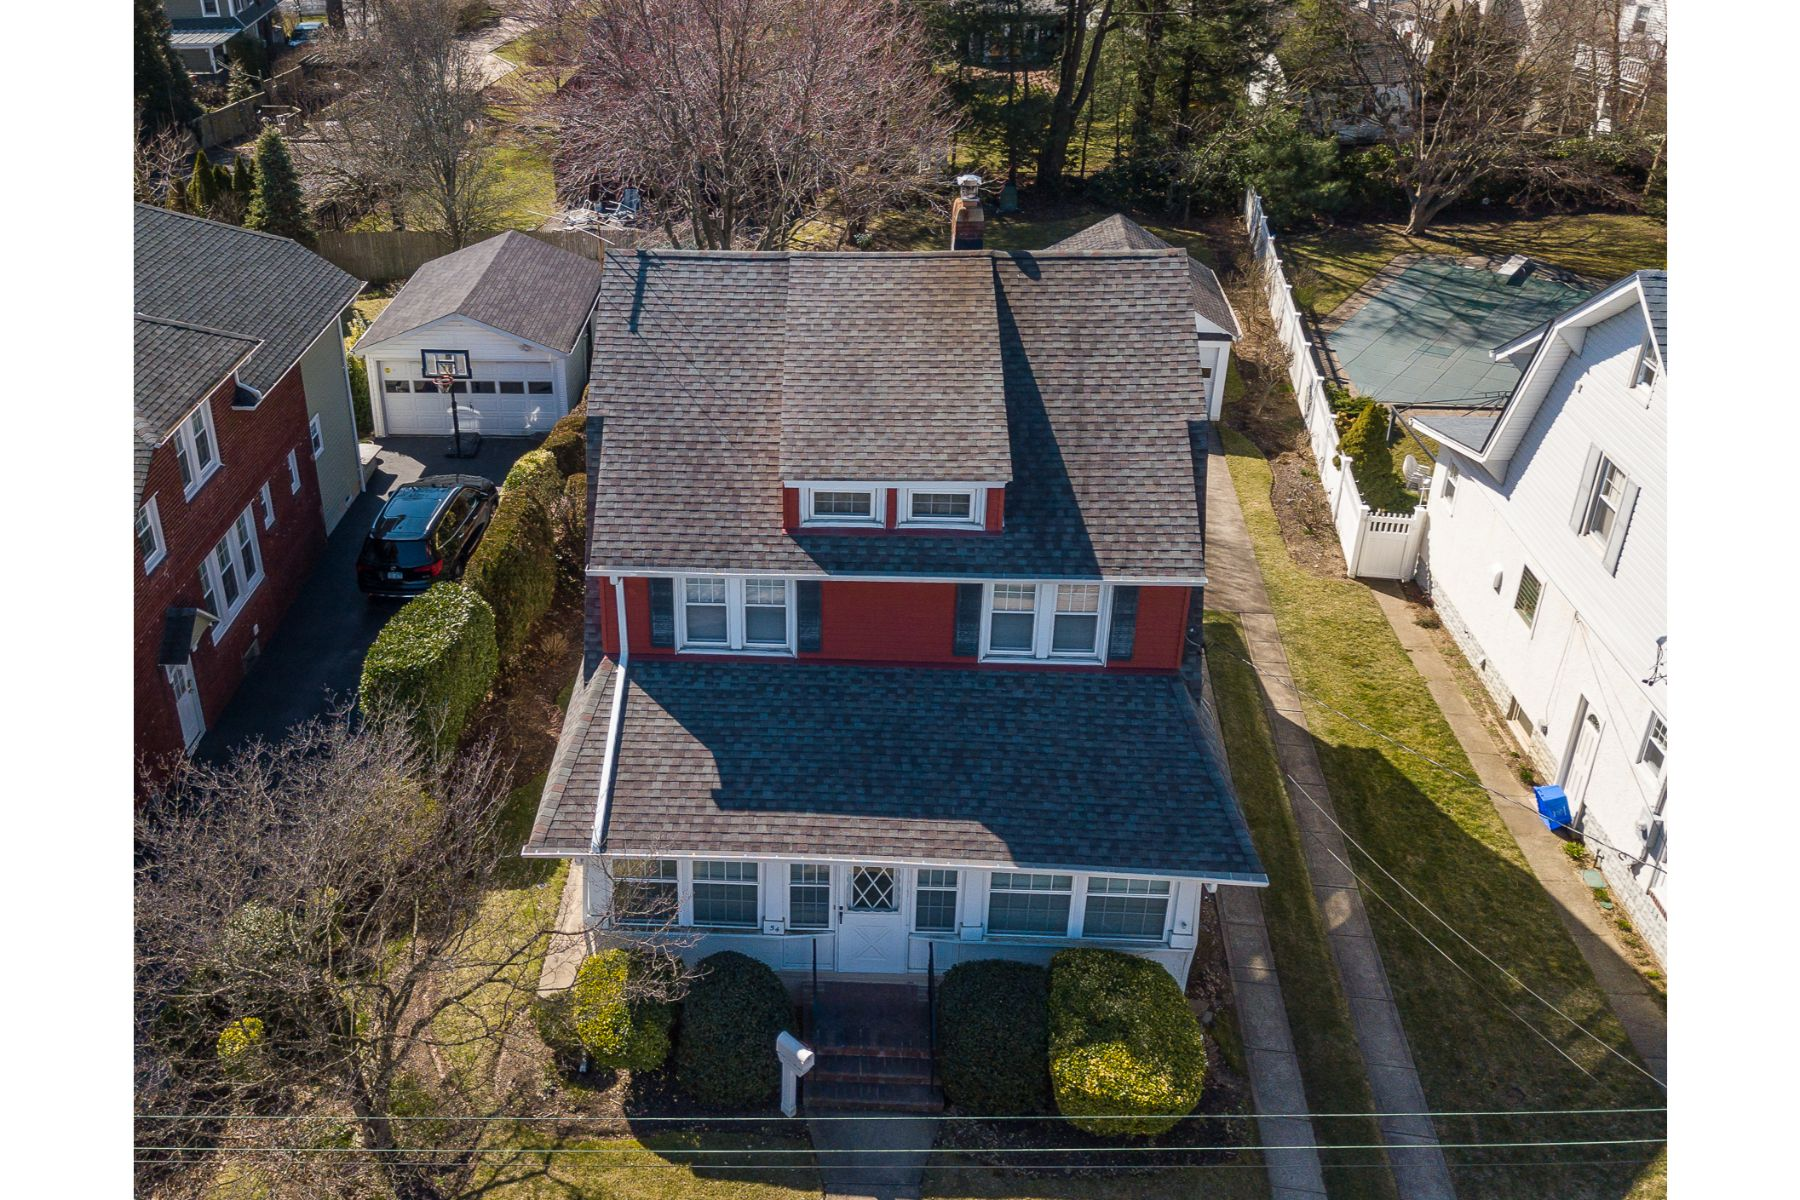 Single Family Homes for Active at Lynbrook 54 Clinton Avenue Lynbrook, New York 11563 United States